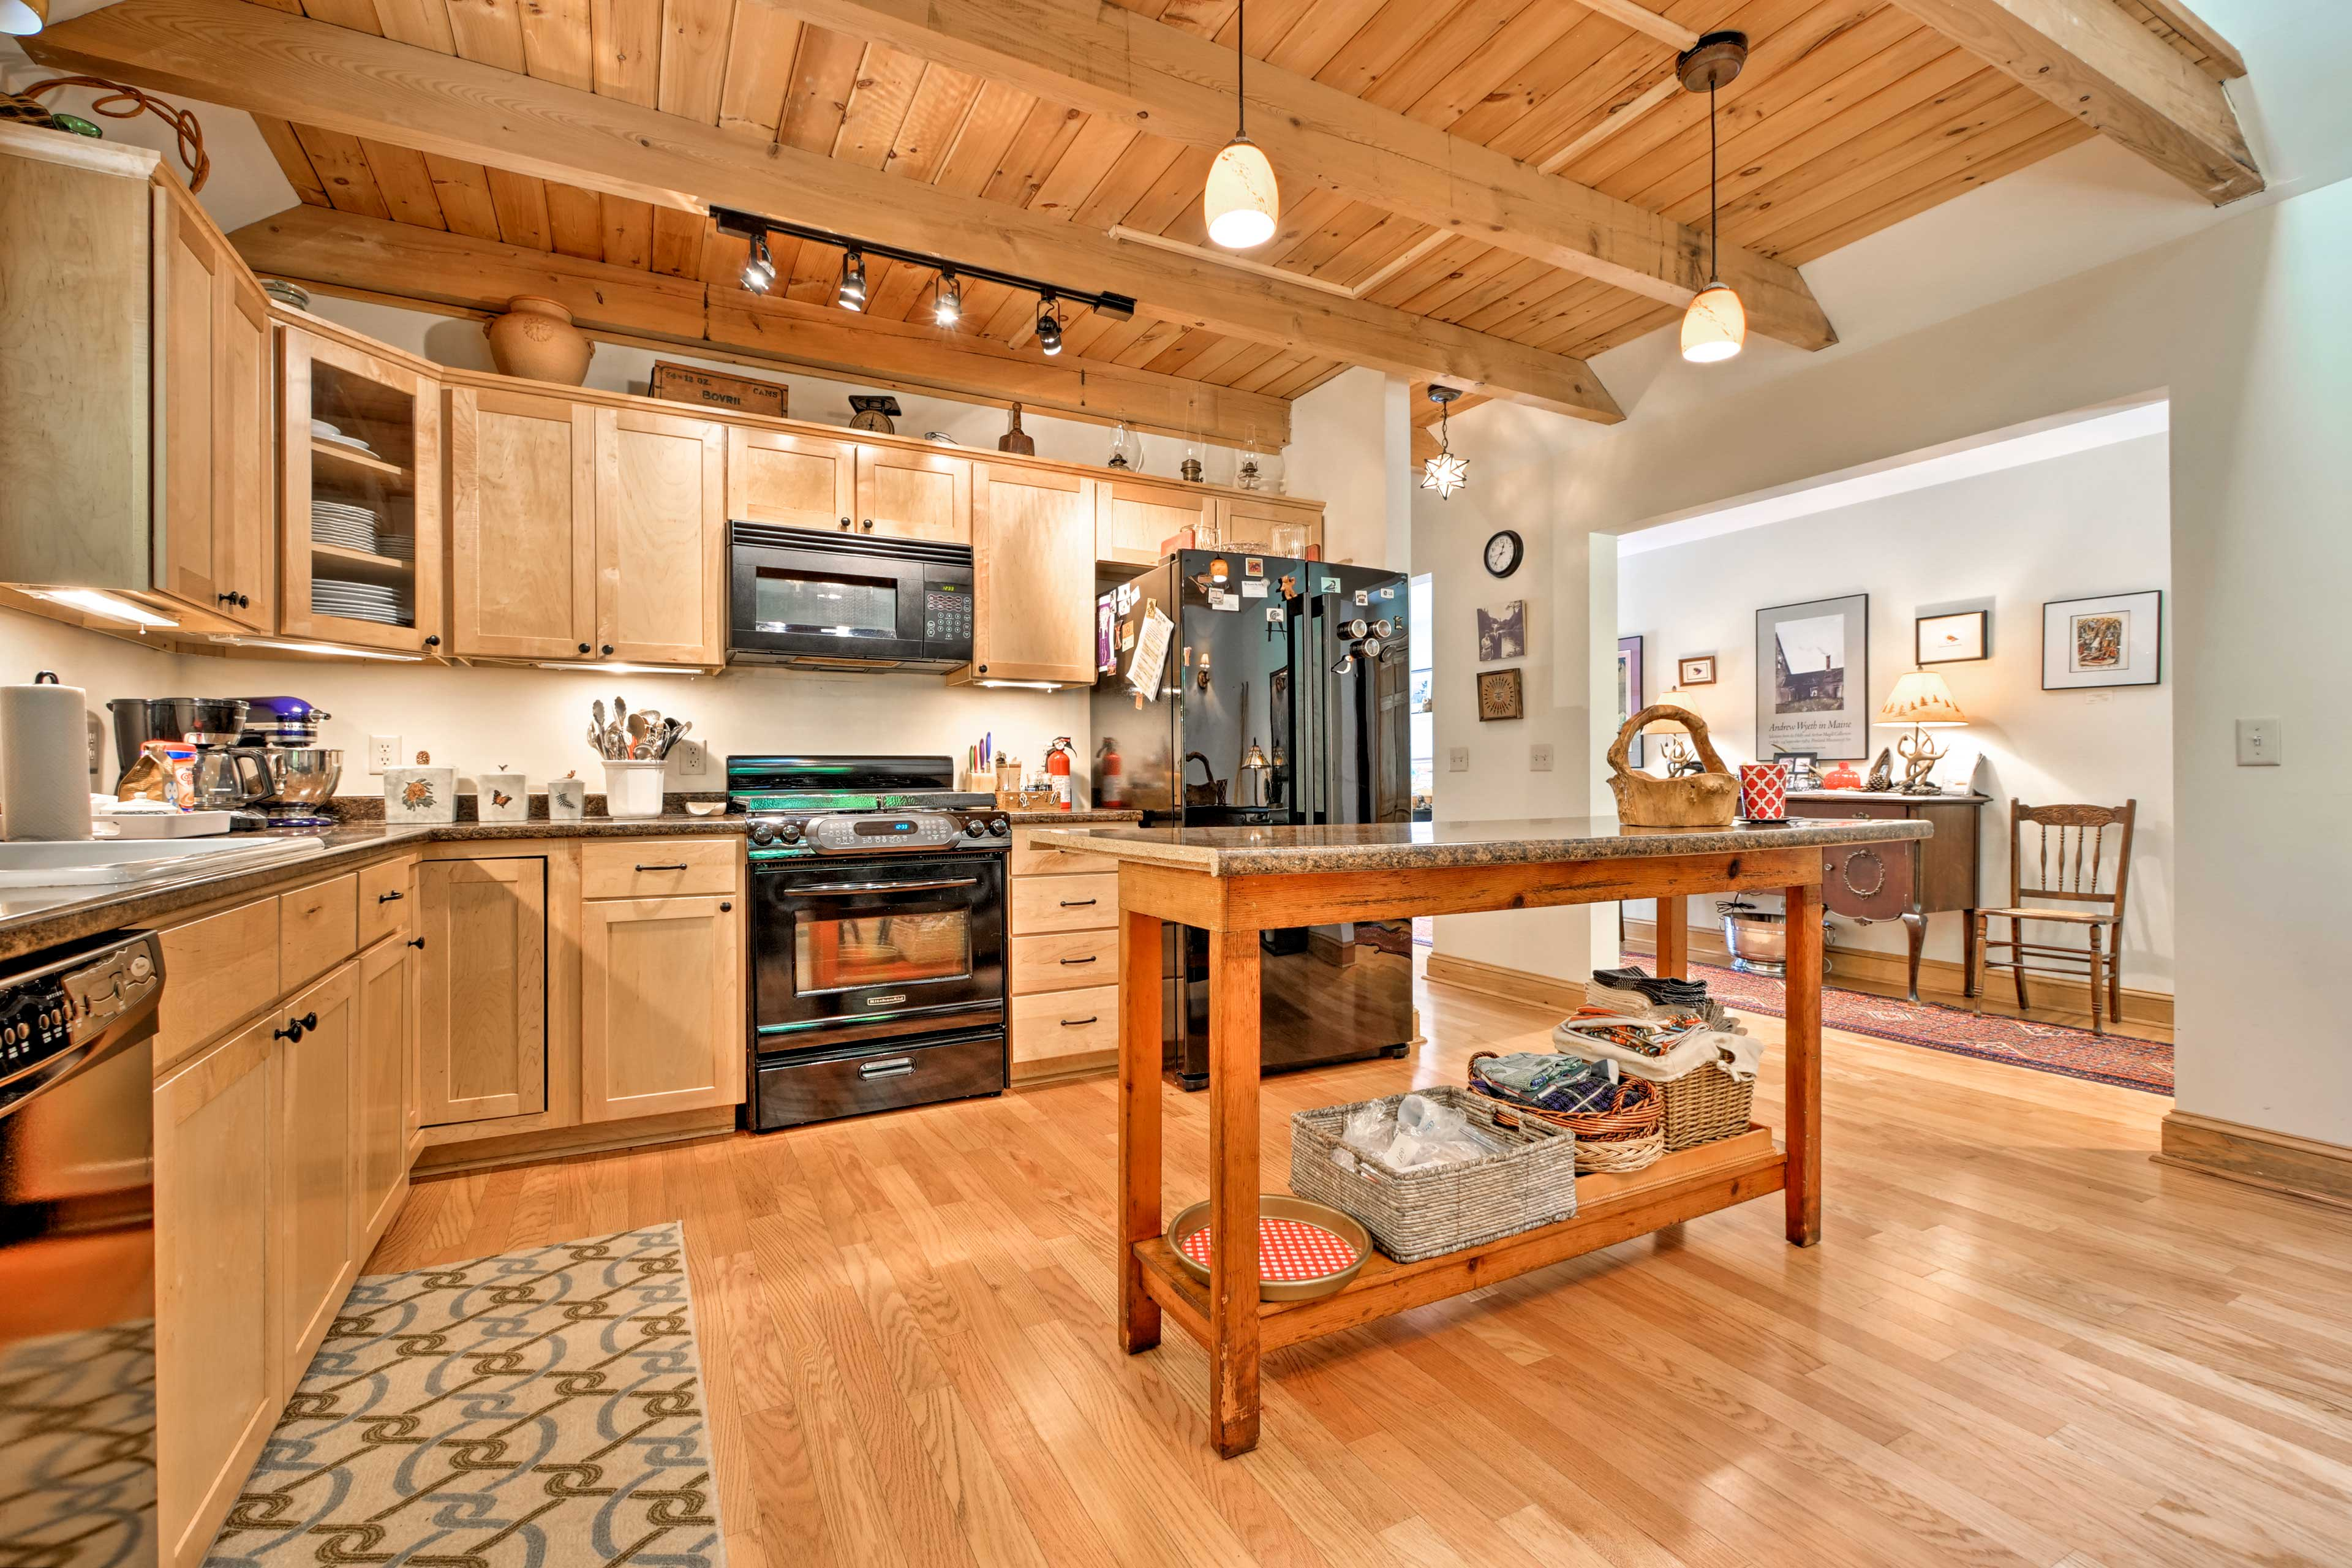 Prepare delicious feasts for your family in the fully equipped kitchen.